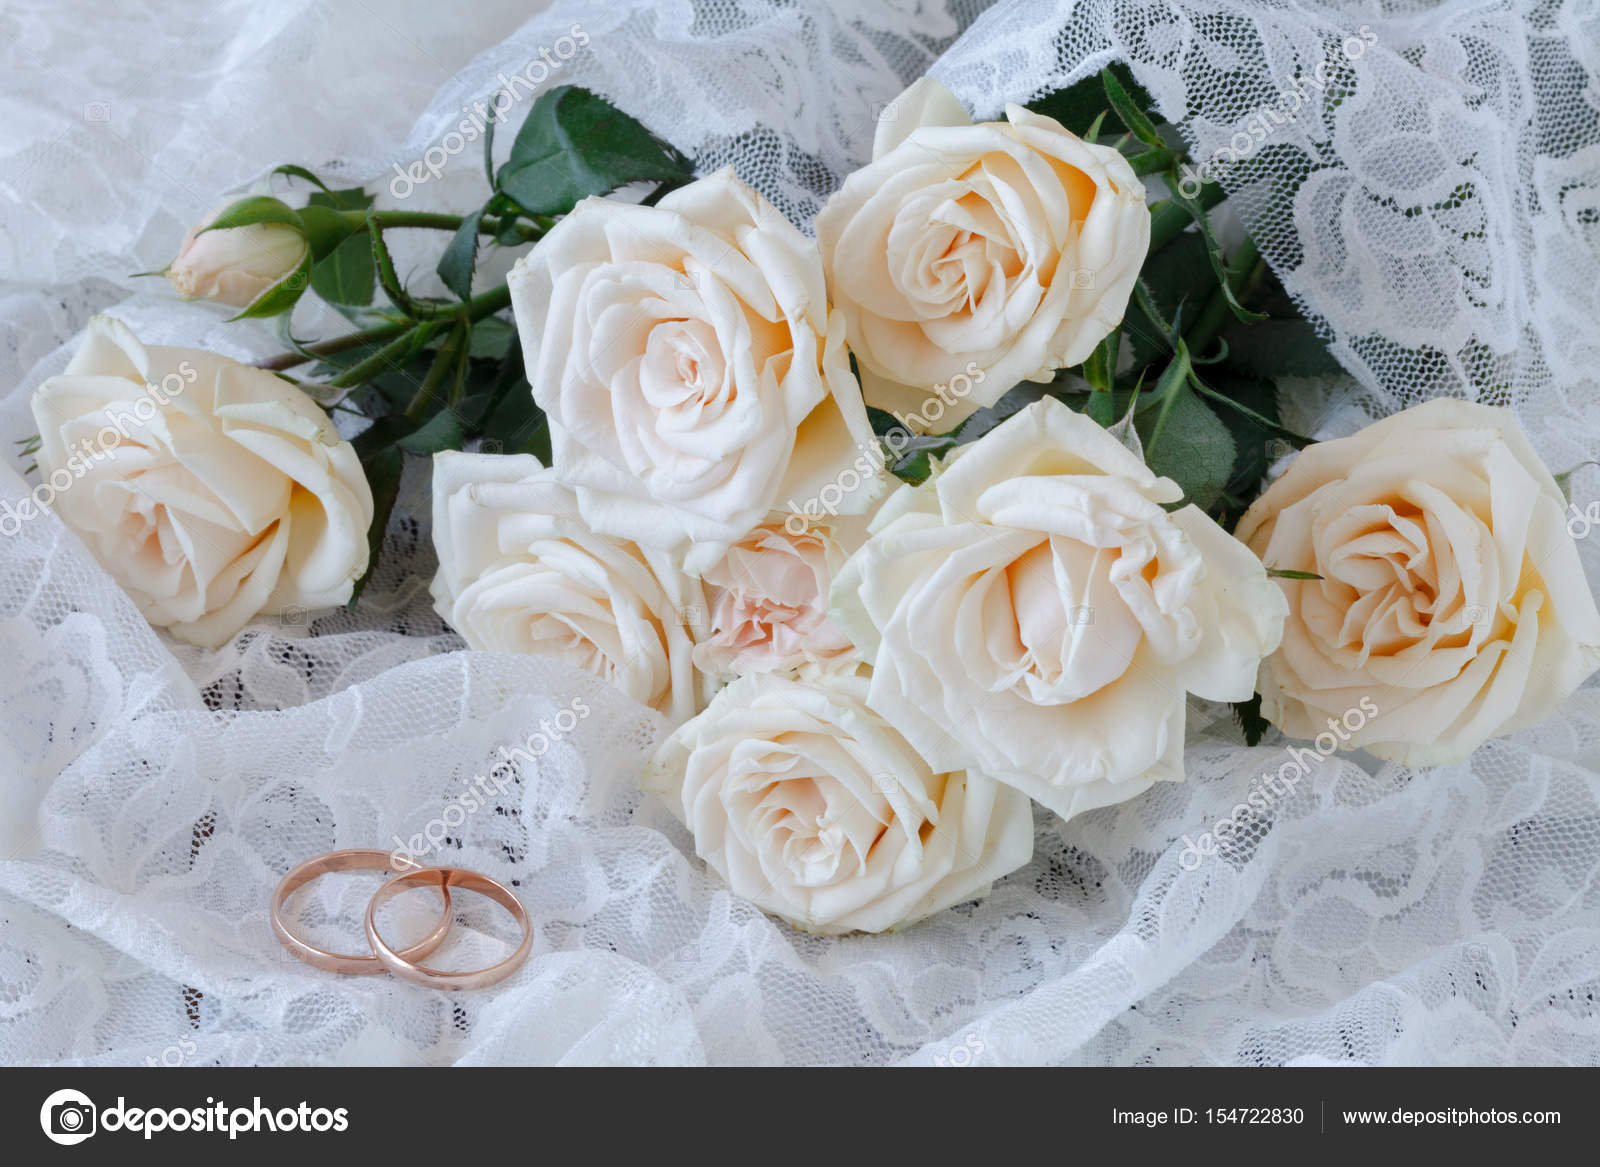 The Rings On The Flowers On A White Fabric Wedding Details Stock